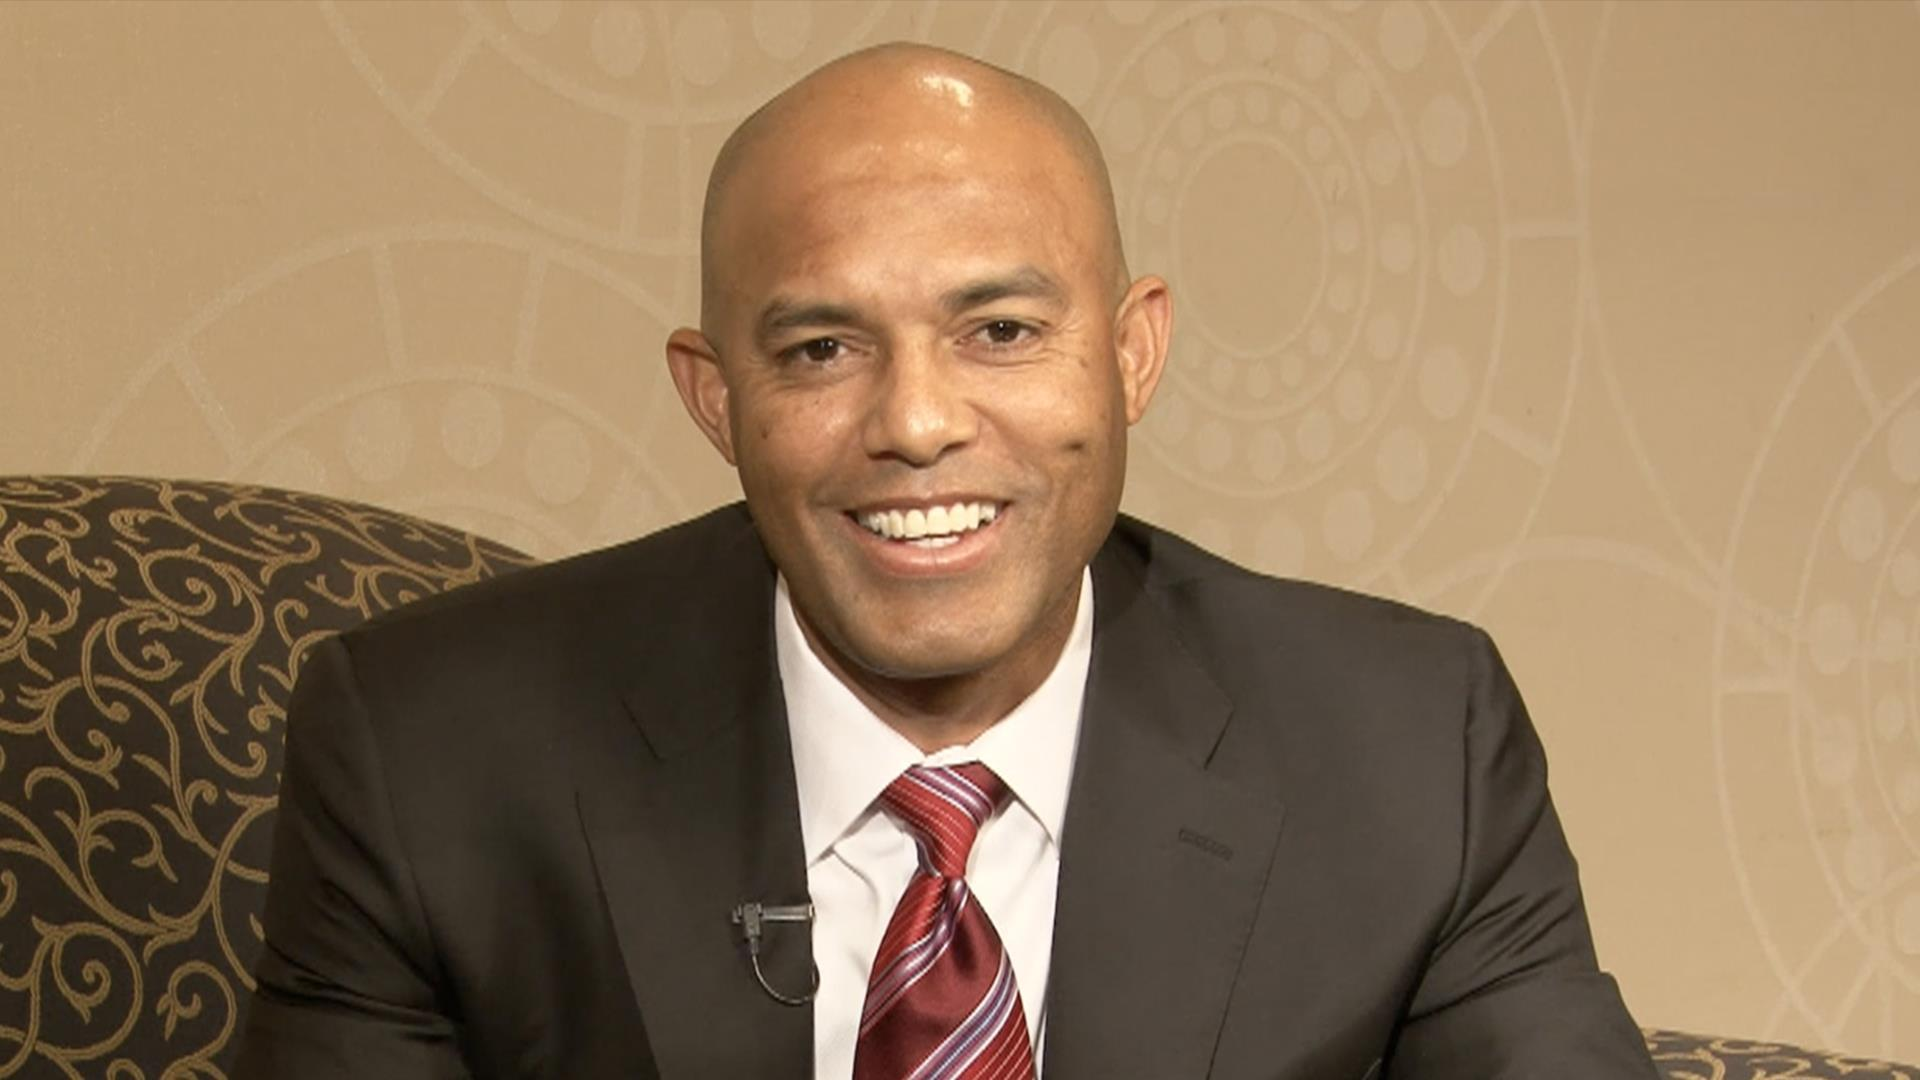 Mariano Rivera on life after the Yankees